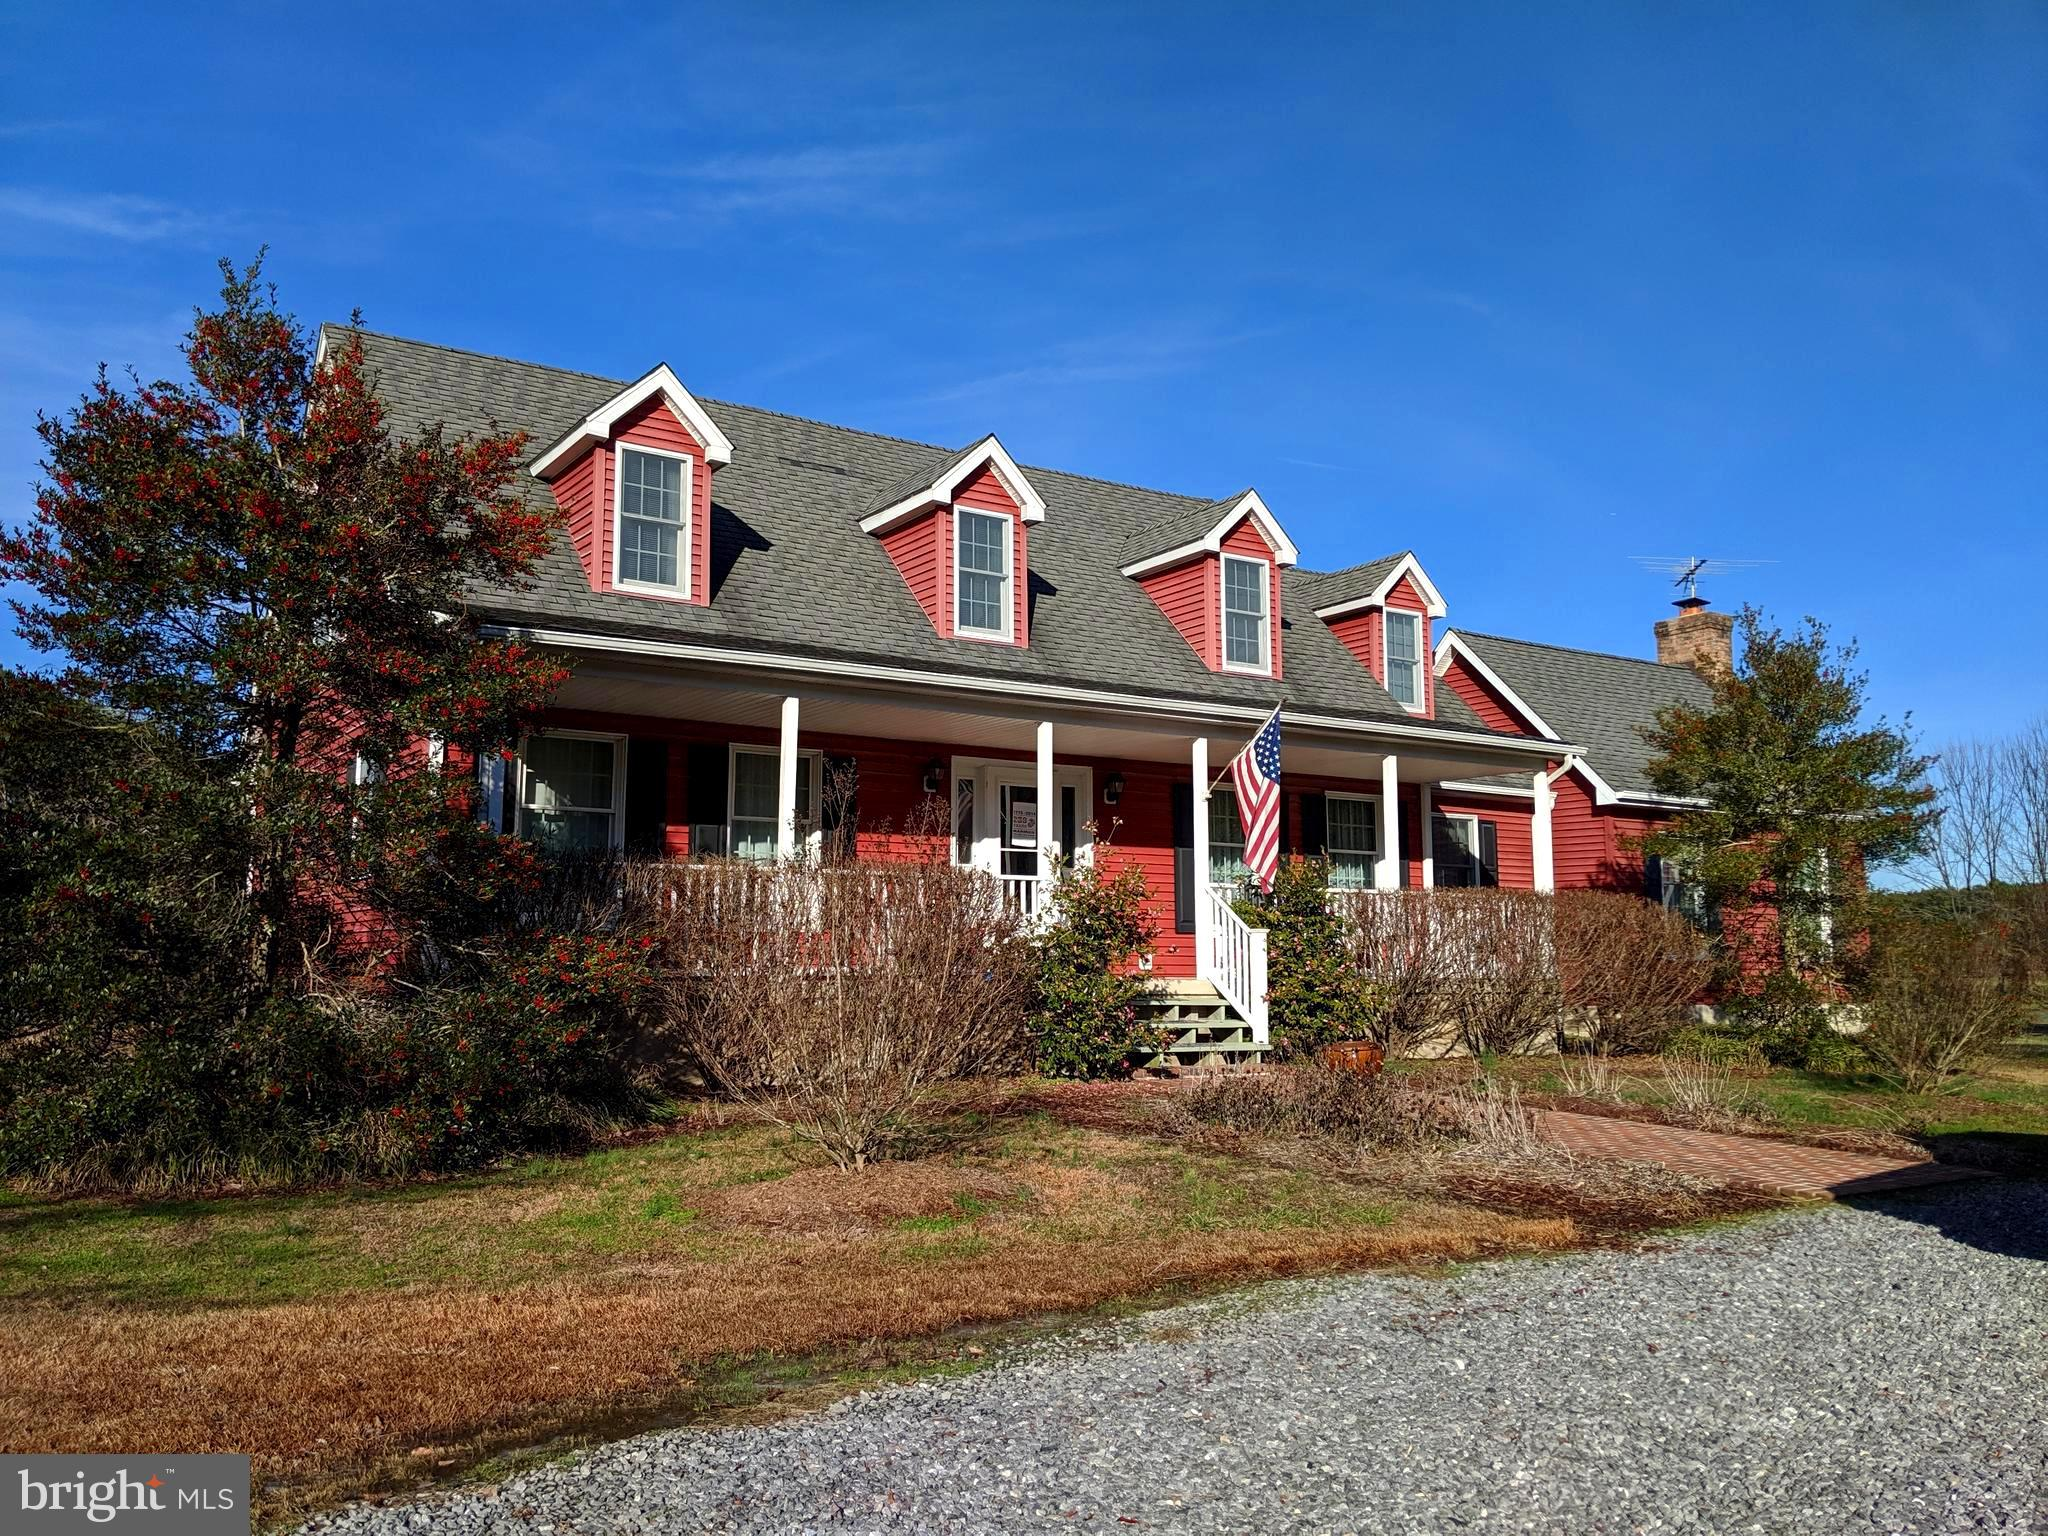 27542 CHLORAS POINT ROAD, TRAPPE, MD 21673